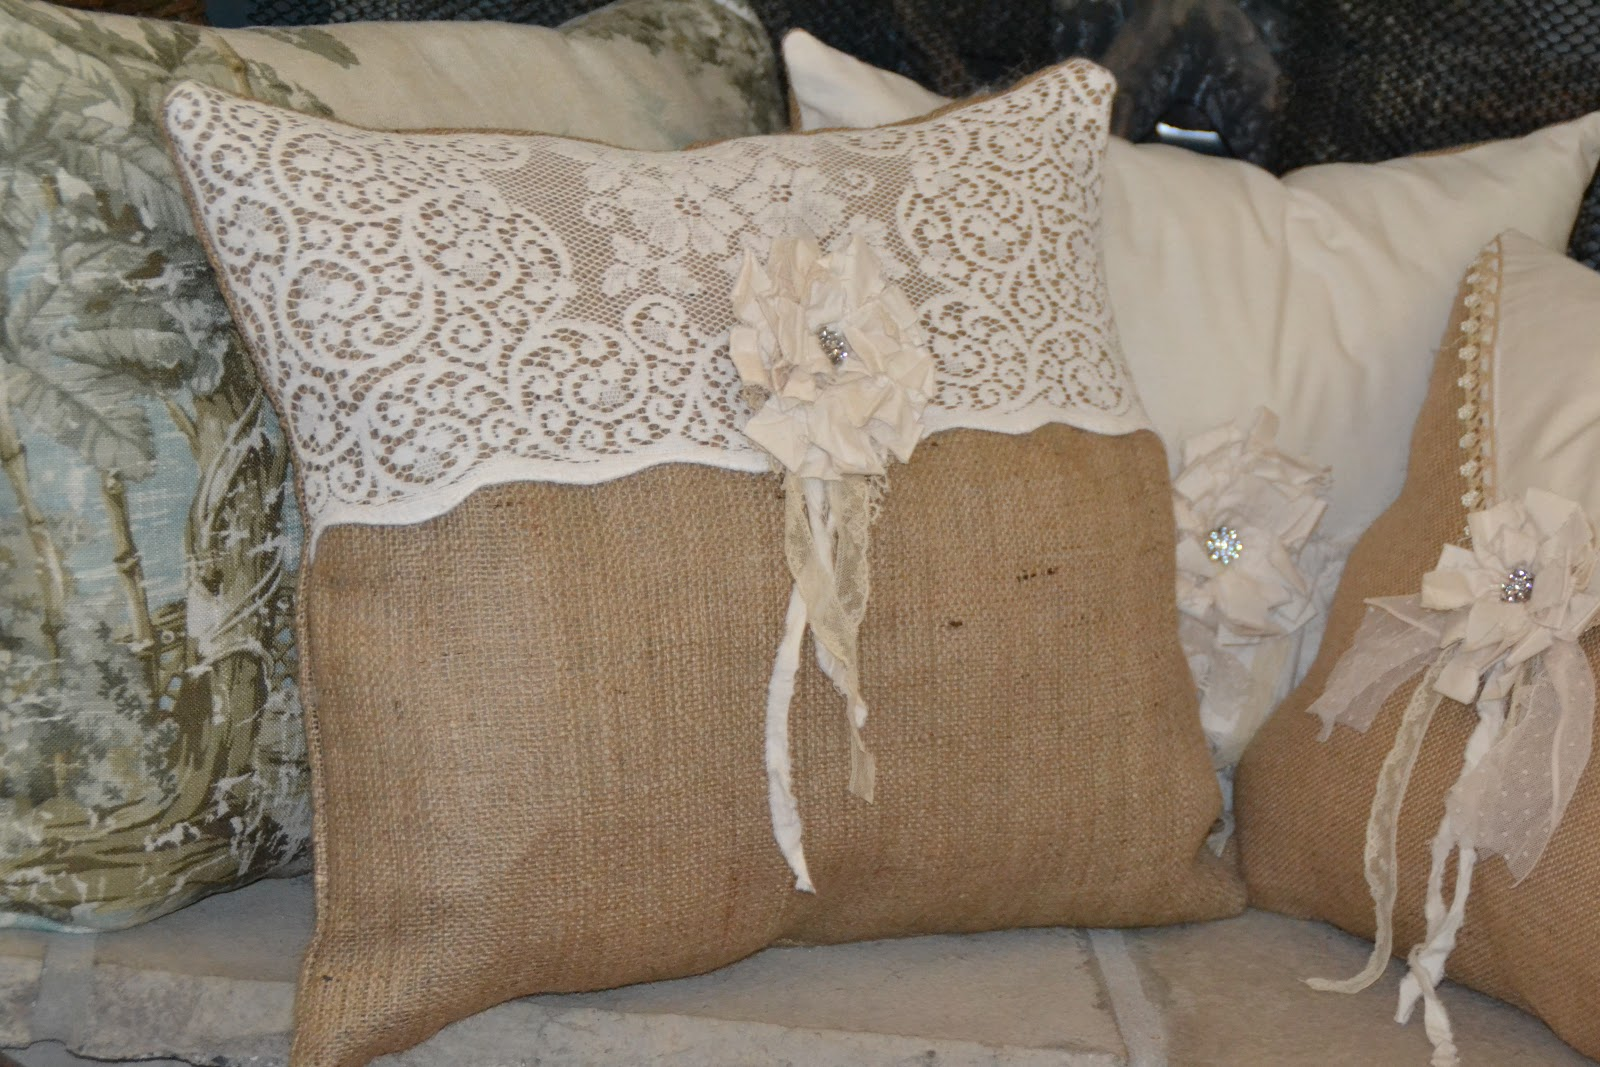 Fancy Lace Tablecloth Pillows